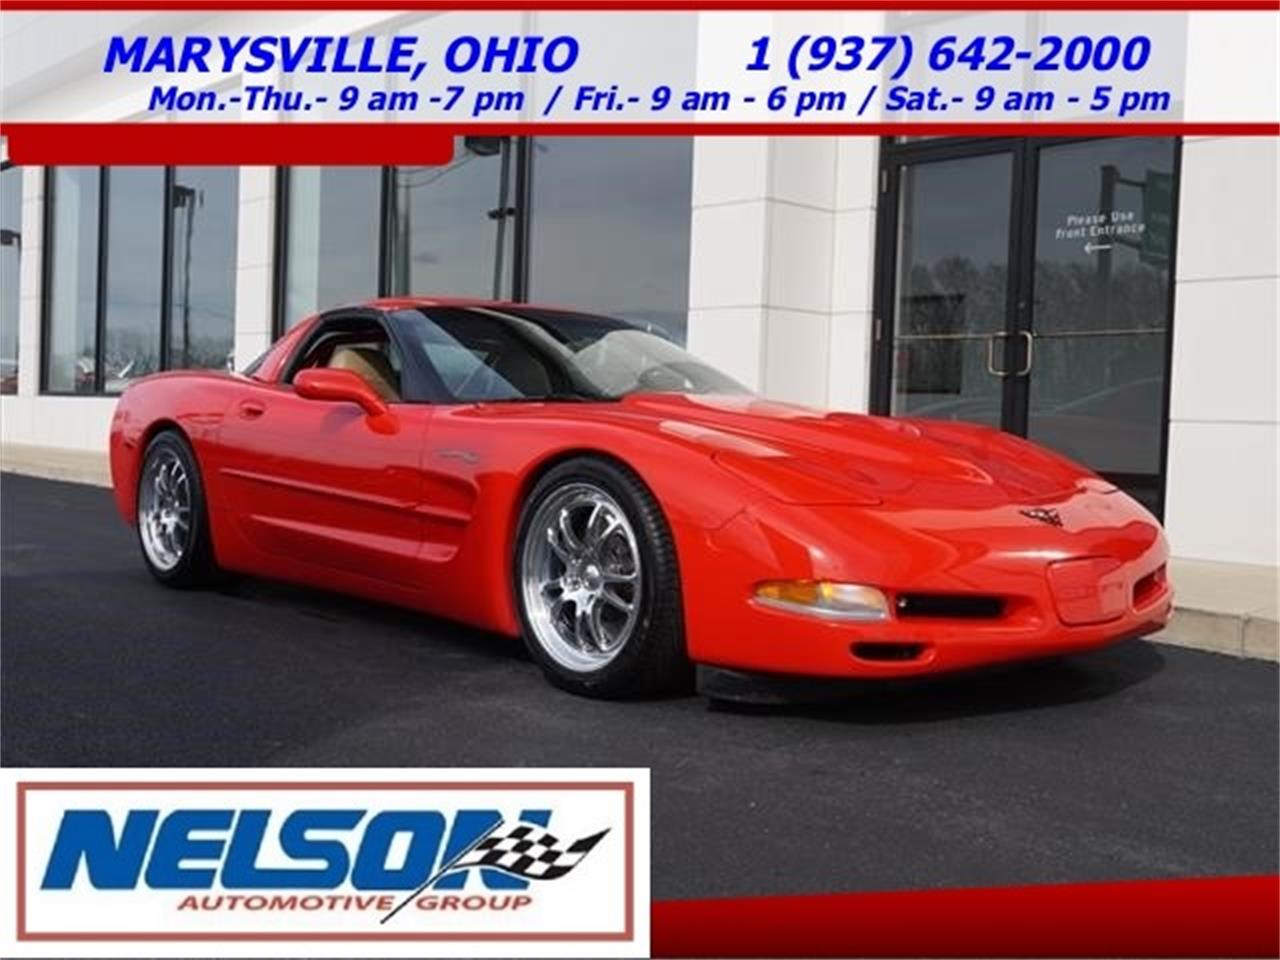 Large Picture of 1998 Chevrolet Corvette located in Ohio - $34,999.00 Offered by Nelson Automotive, Ltd. - KKOM